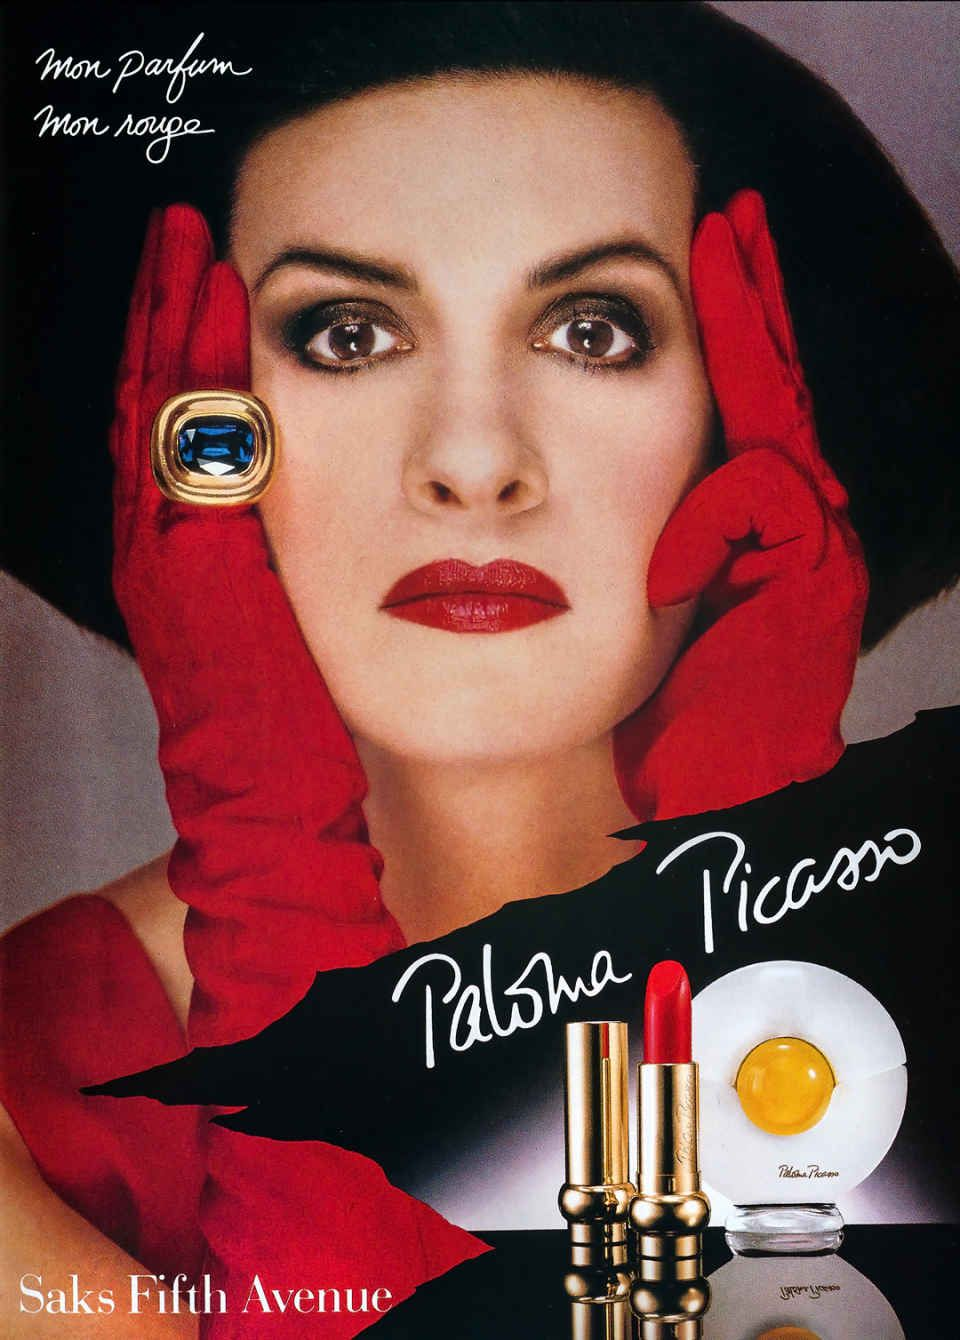 Paloma Picasso Paloma Picasso In A Magazine Ad For Her Eponymous Fragrance And